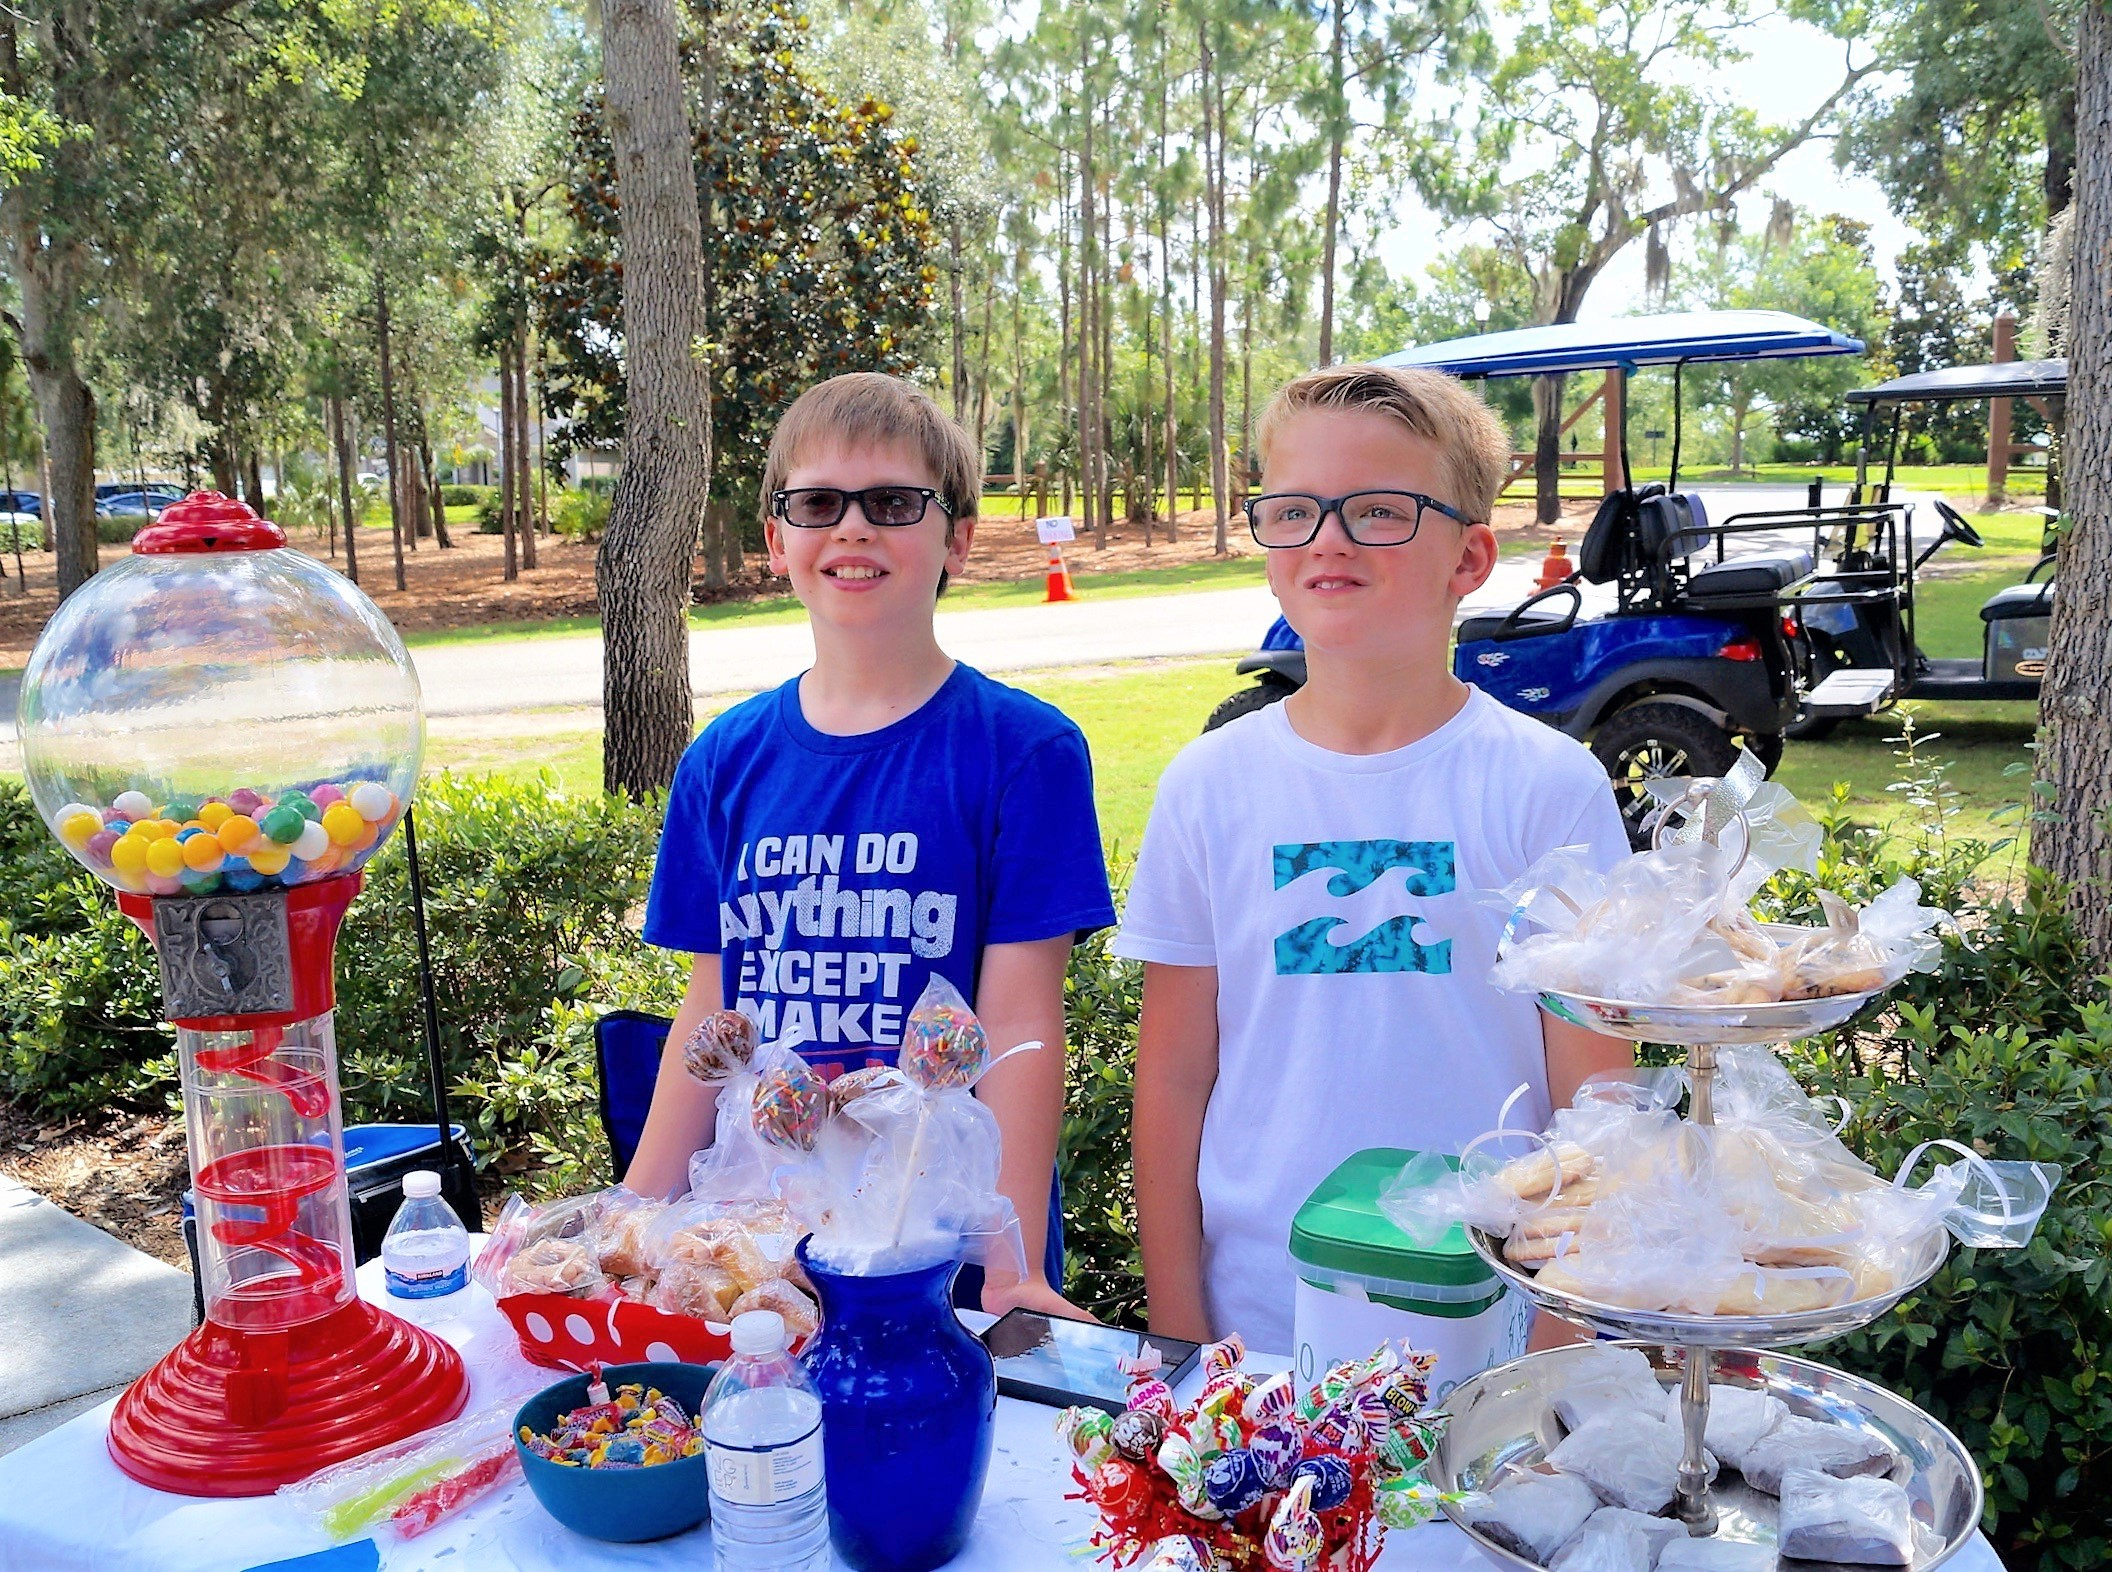 Beckham Alexander, 10, and Sam Thornton, 9, sold sweet treats to benefit JDRF Diabetes Foundation. Alexander was diagnosed with type 1 diabetes earlier this year and wants to educate people about the many misconceptions associated with diabetes.